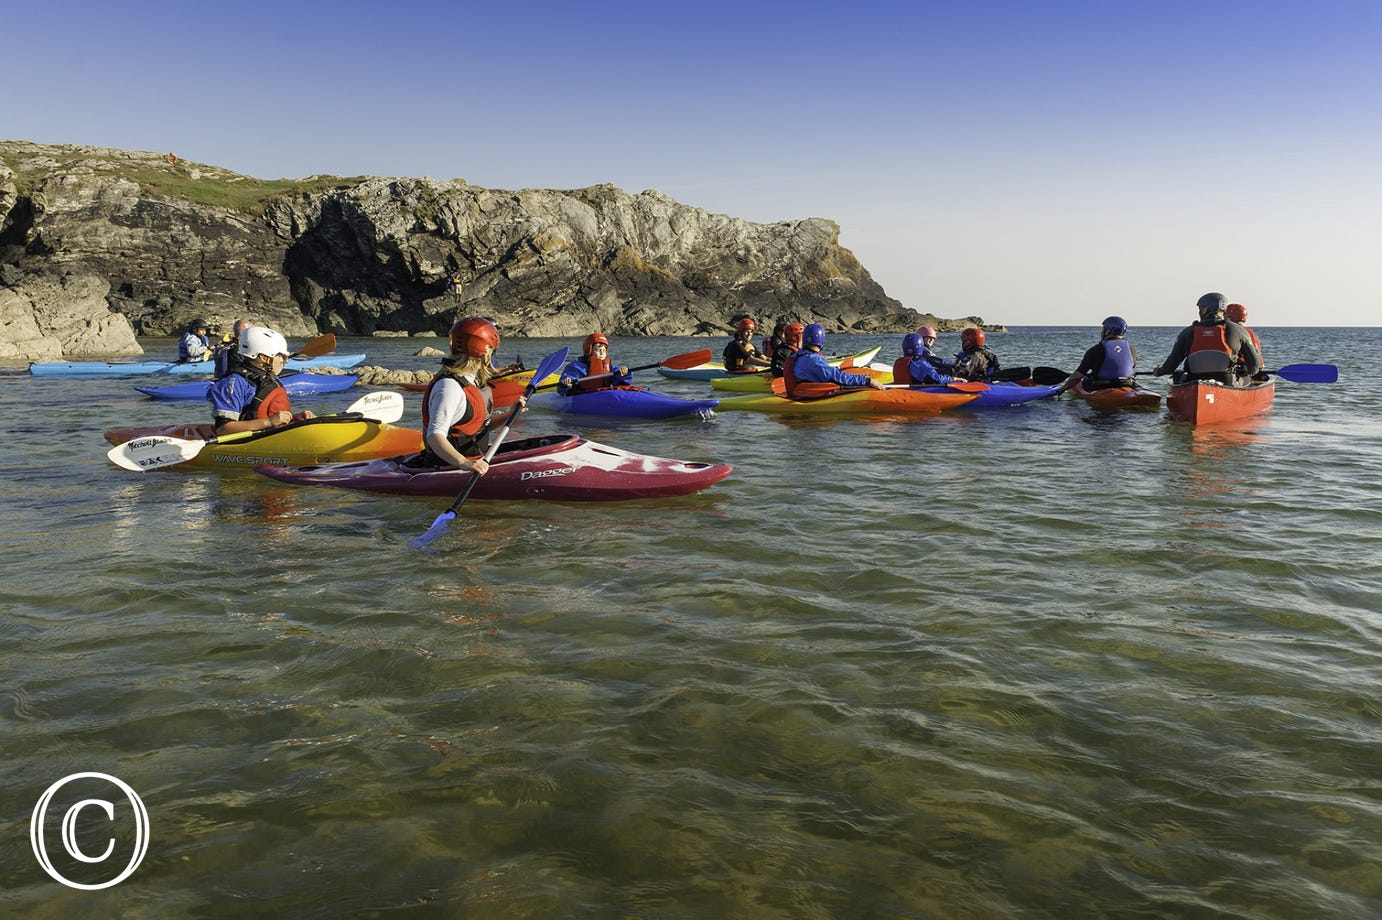 Sea Kayaking at Porth Dafarch, Anglesey